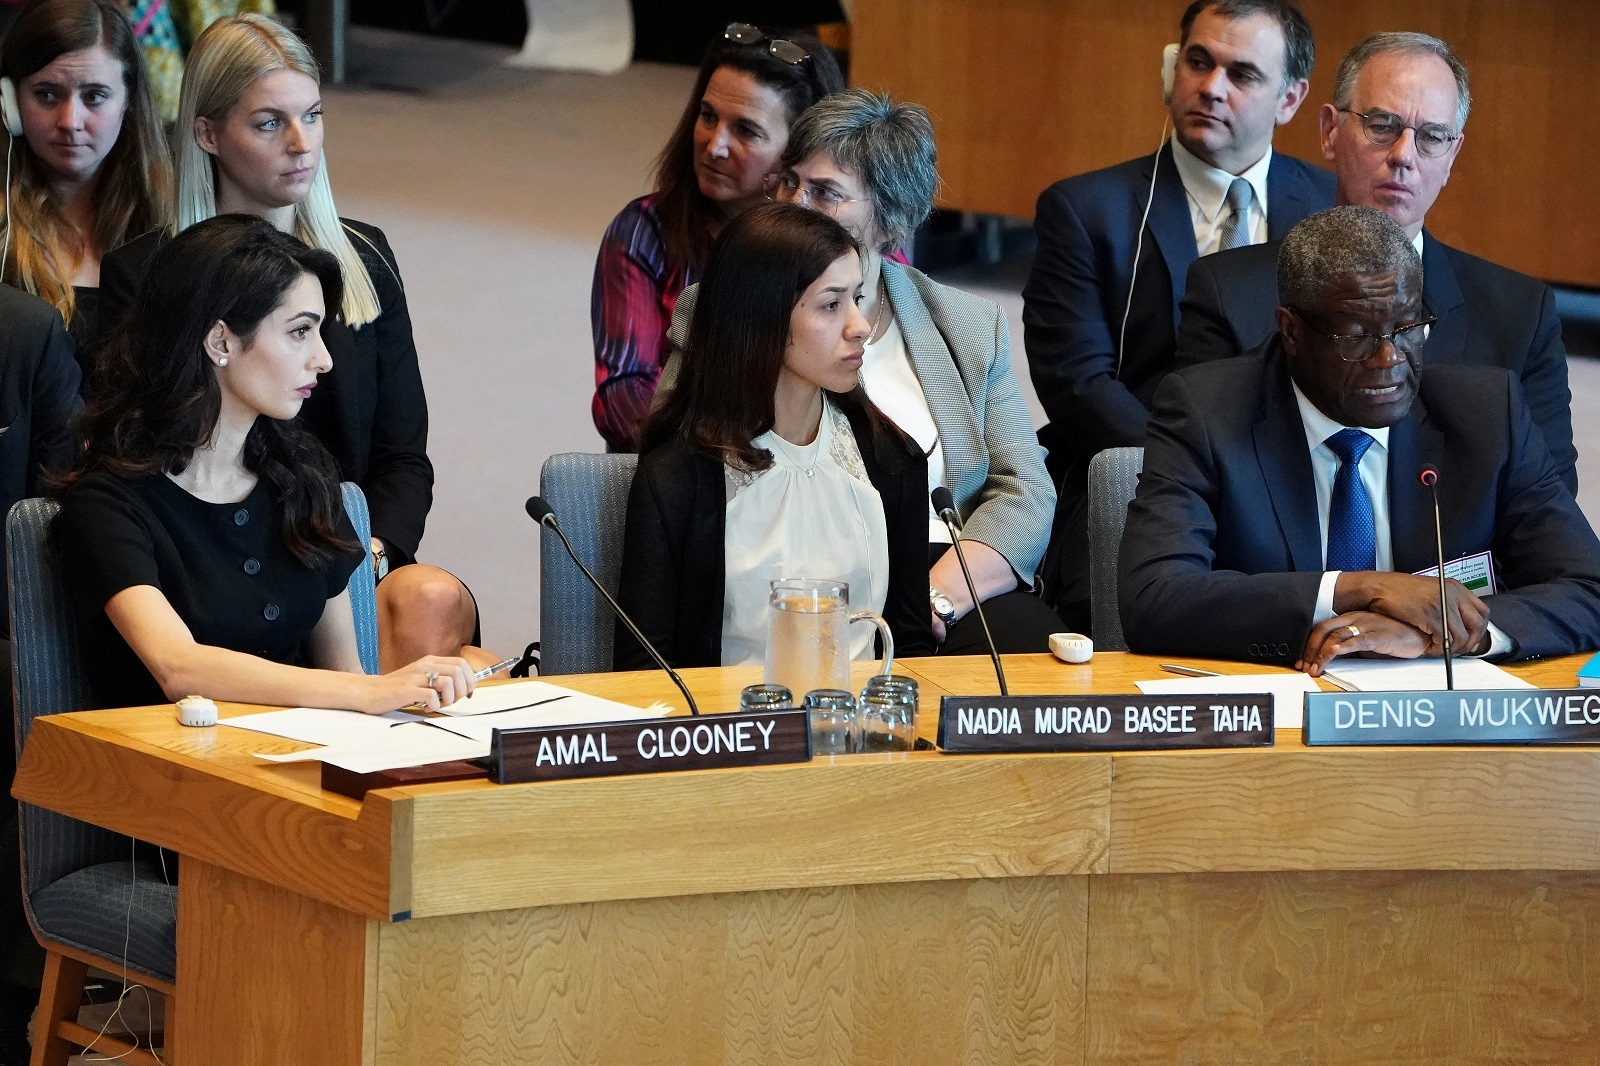 Amal Clooney and Nadia Murad listen to Denis Mukwege speaking at the United Nations Security Council during a meeting about sexual violence in conflict in New York, New York, US, April 23, 2019. REUTERS/Carlo Allegri